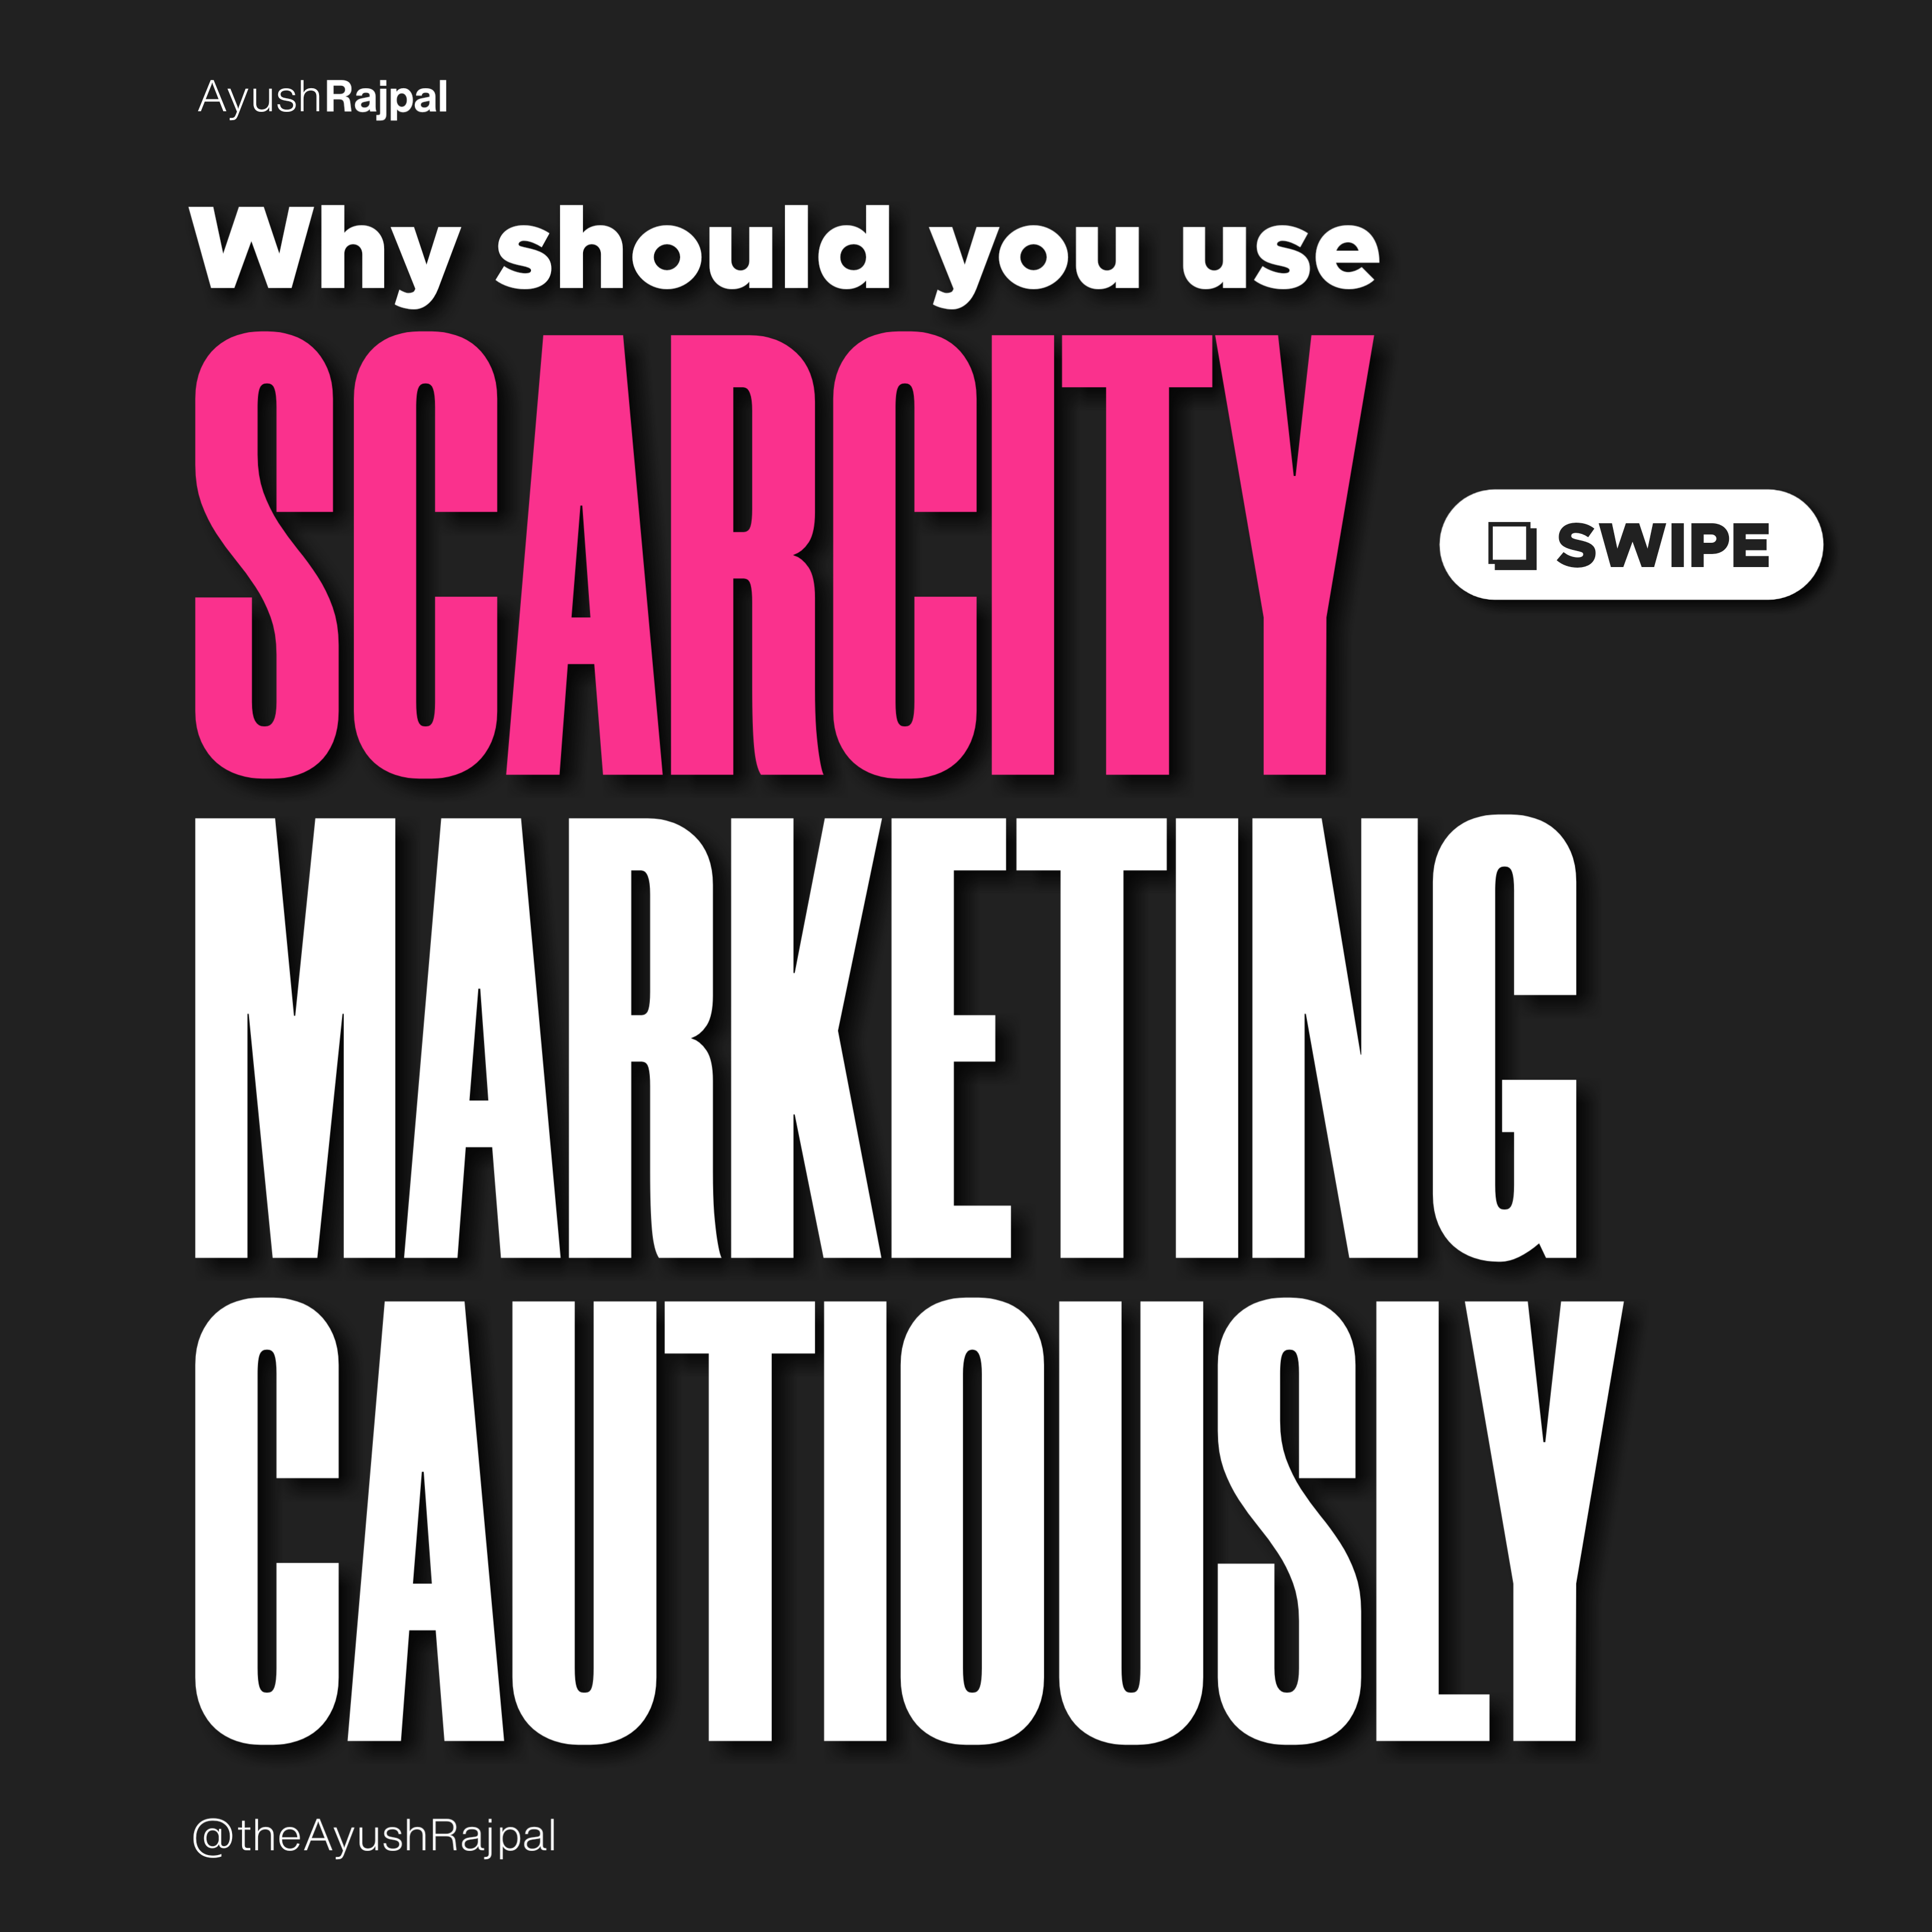 Why you should use Scarcity marketing cautiously